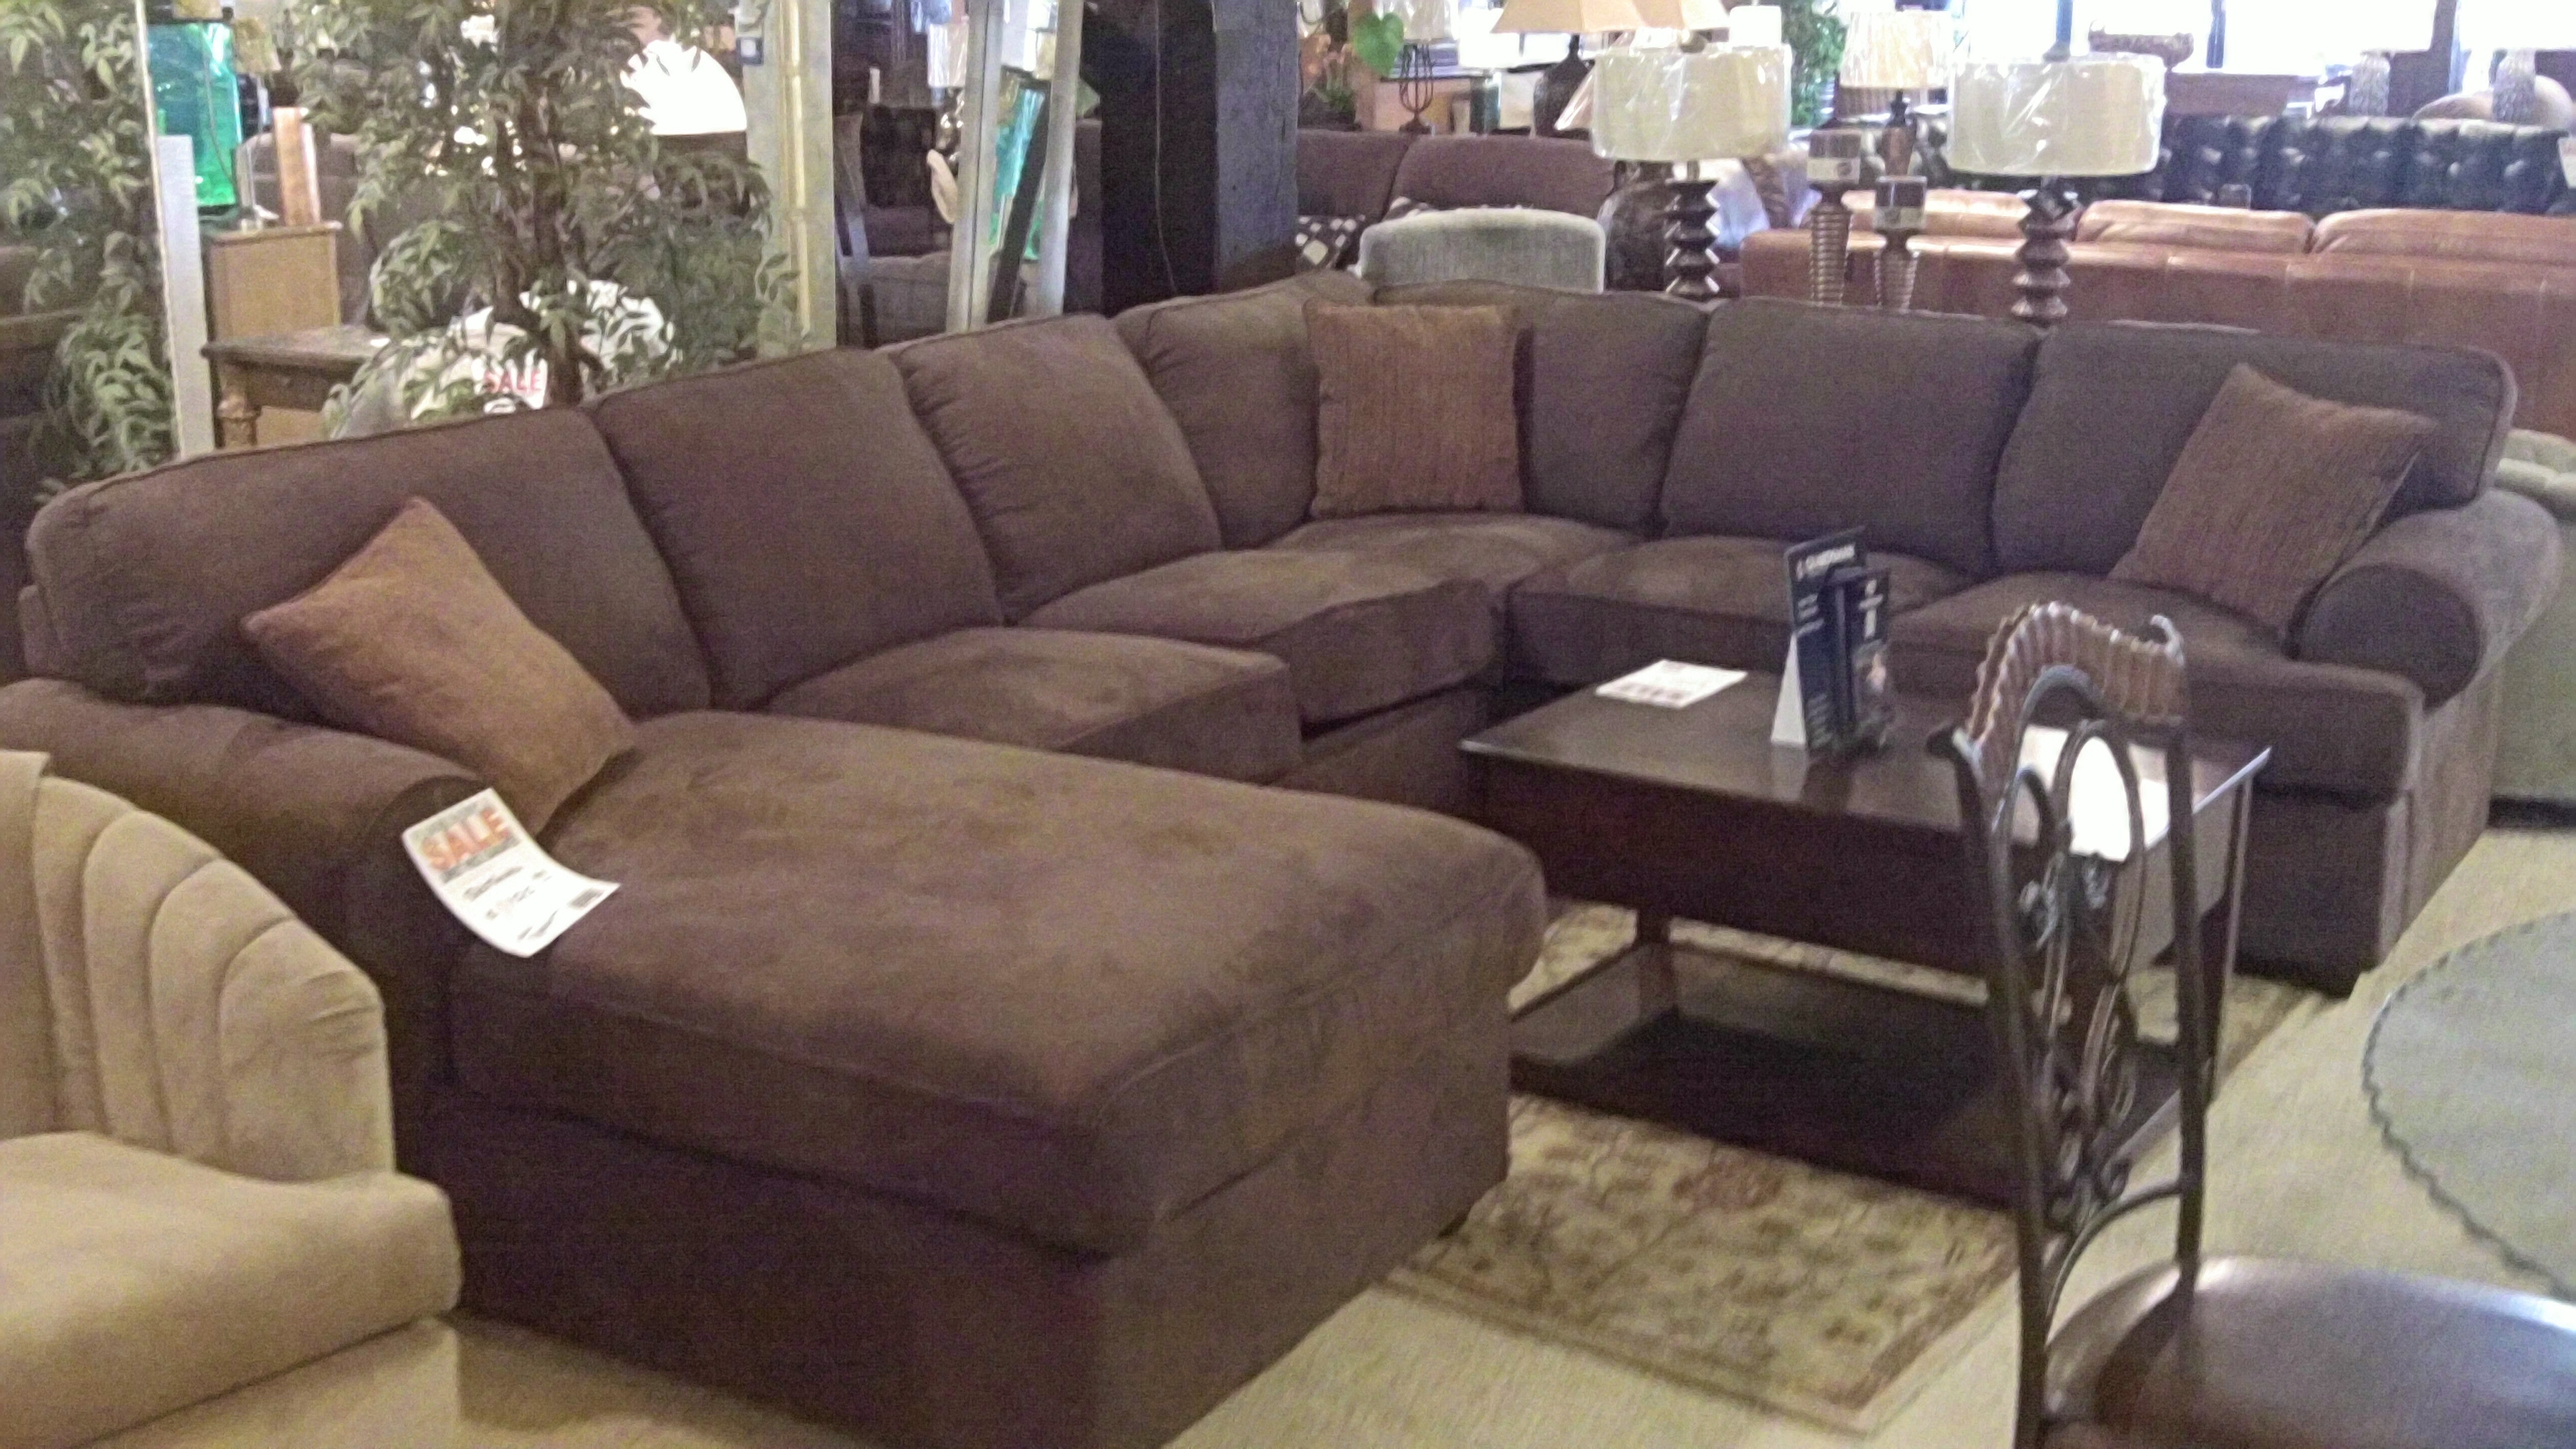 New Large Sectional Sofa 20 About Remodel Living Room Sofa Inspiration with Large Sectional Sofa